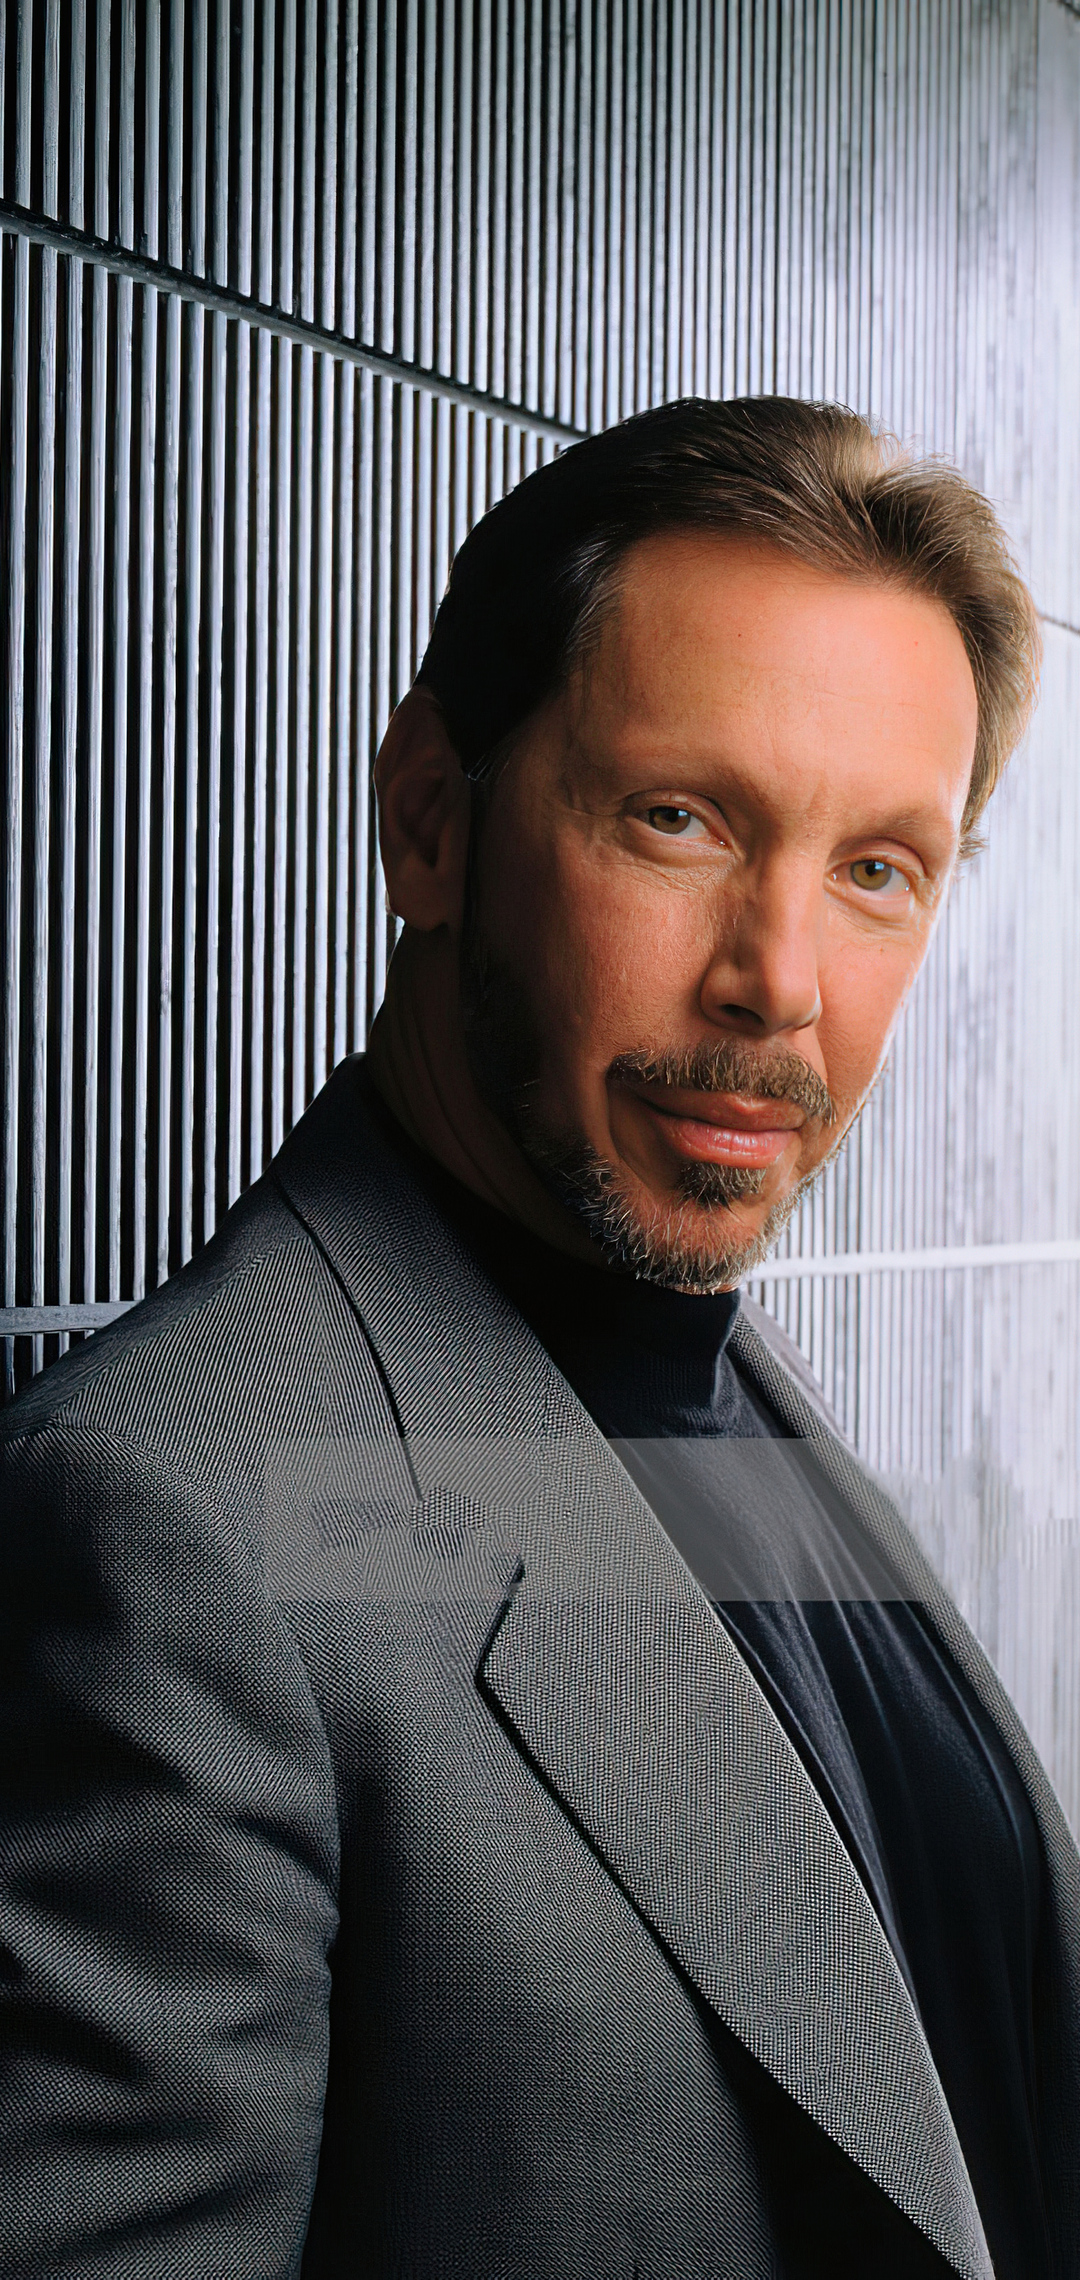 larry-ellison-44.jpg